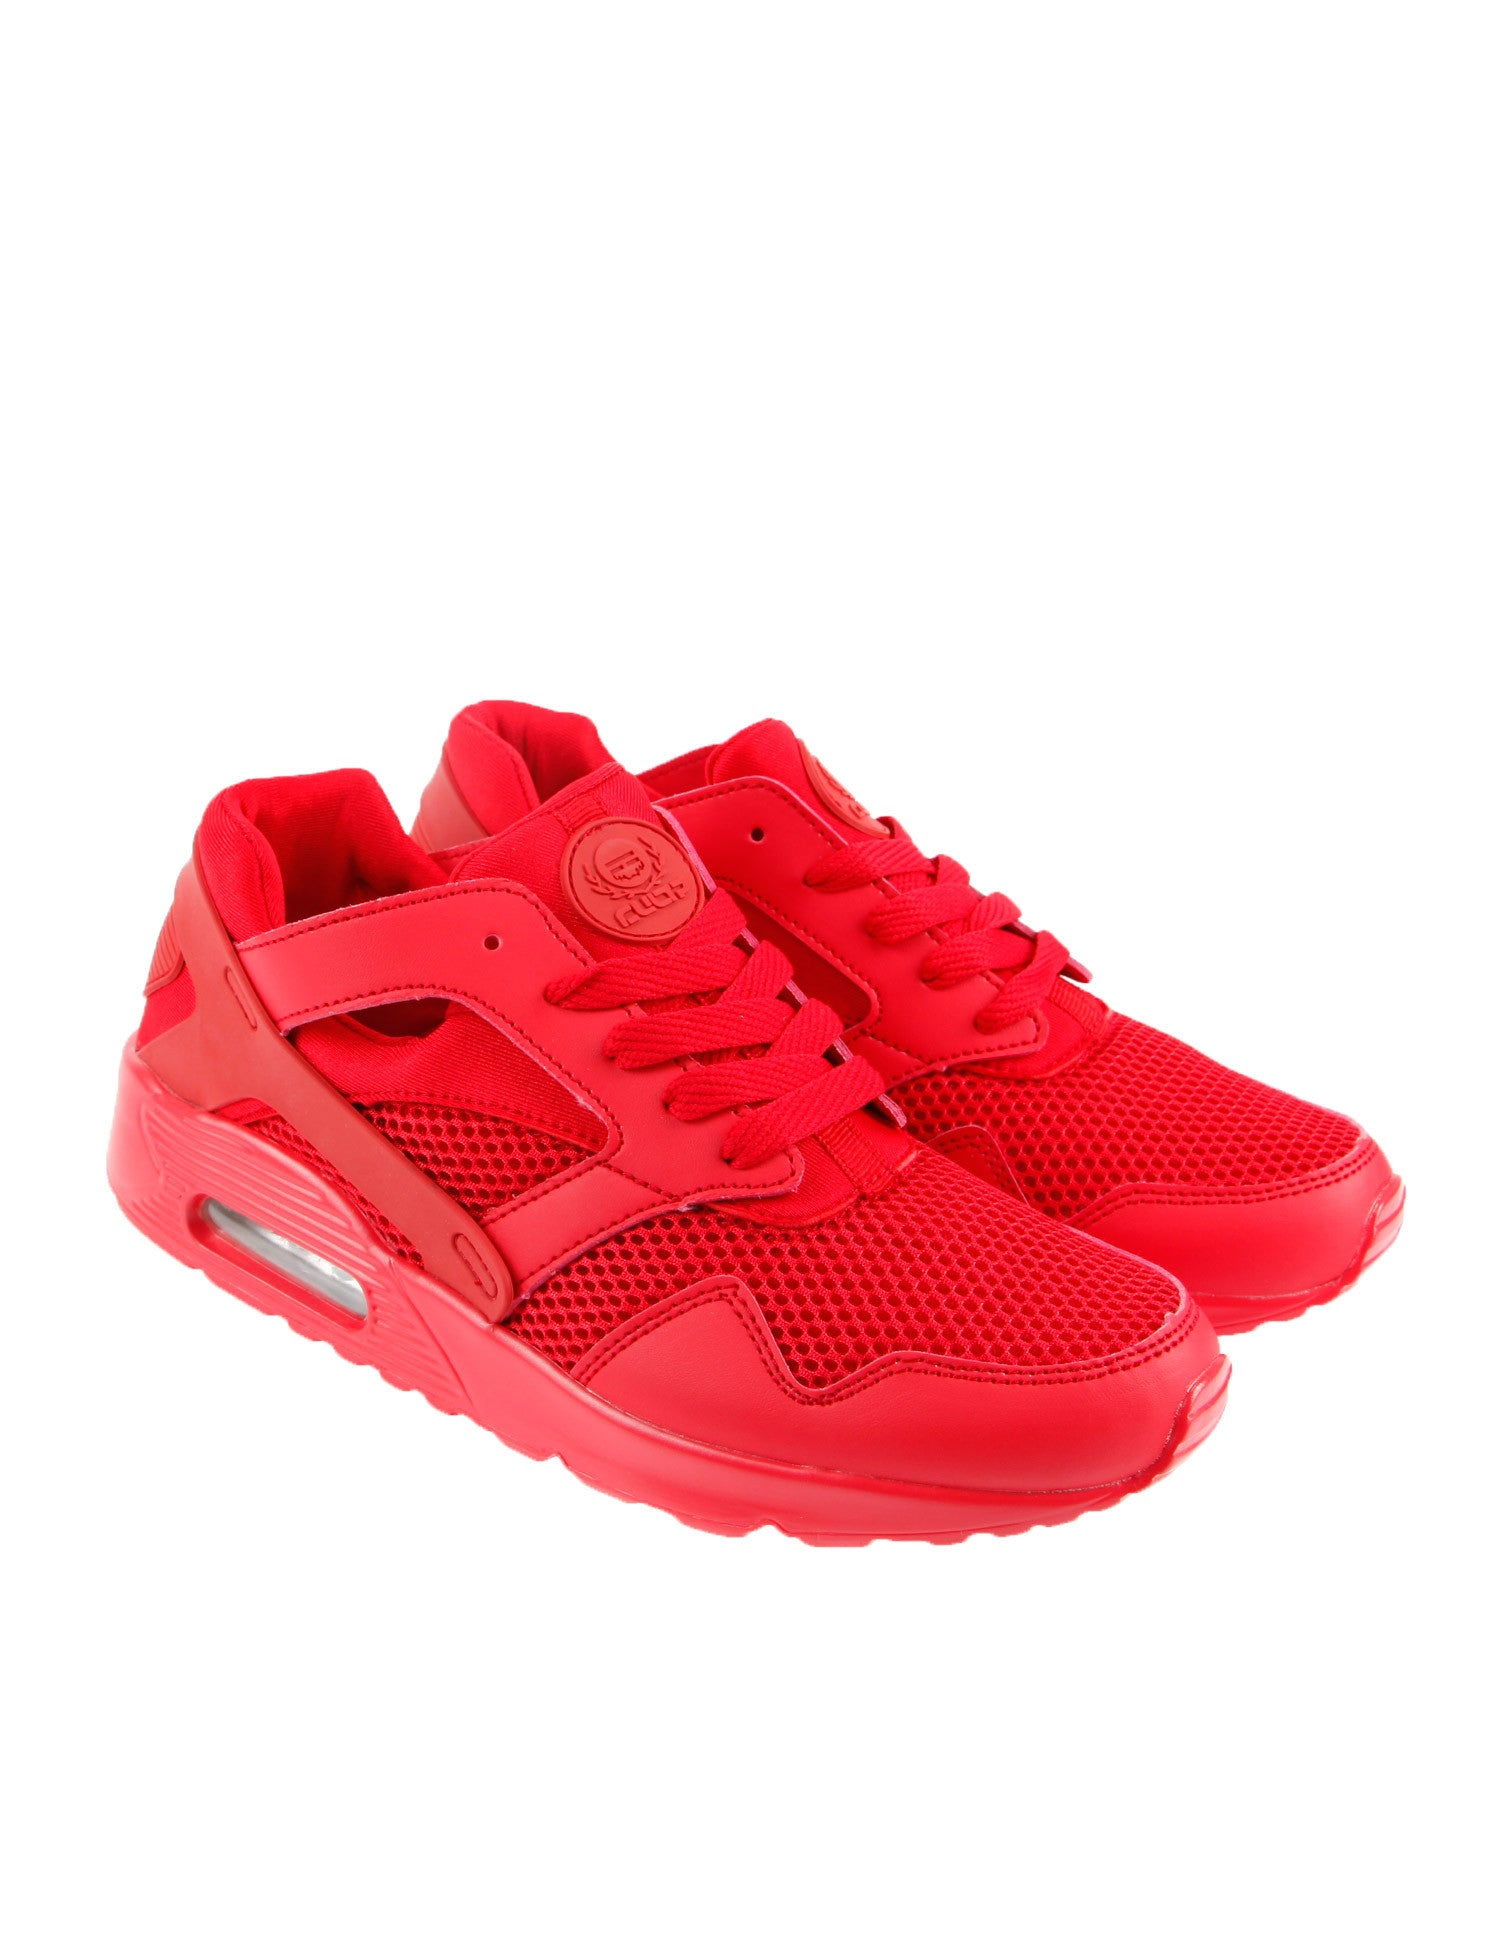 Cultz Shoes 250822 Red